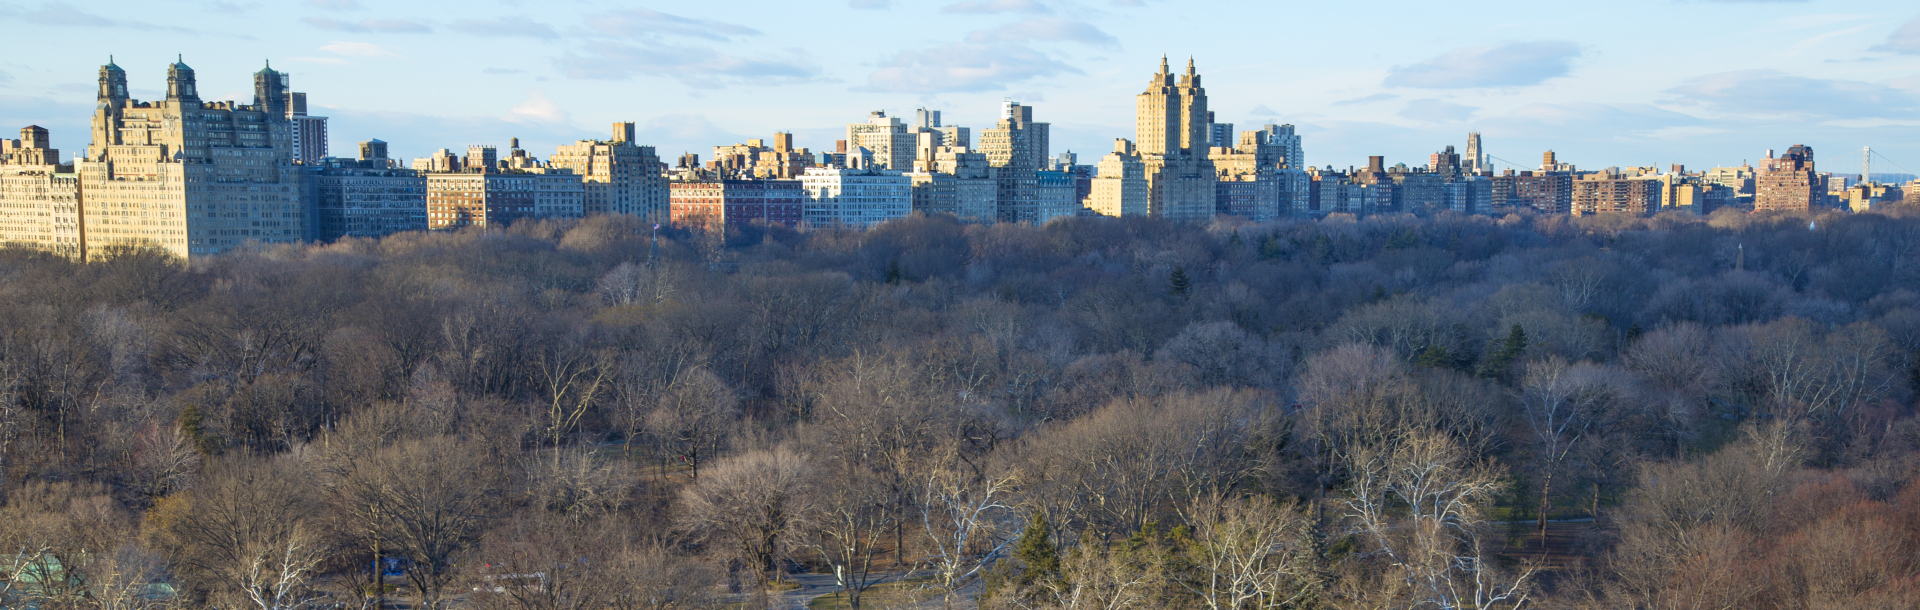 Skyline over Central Park in New York City